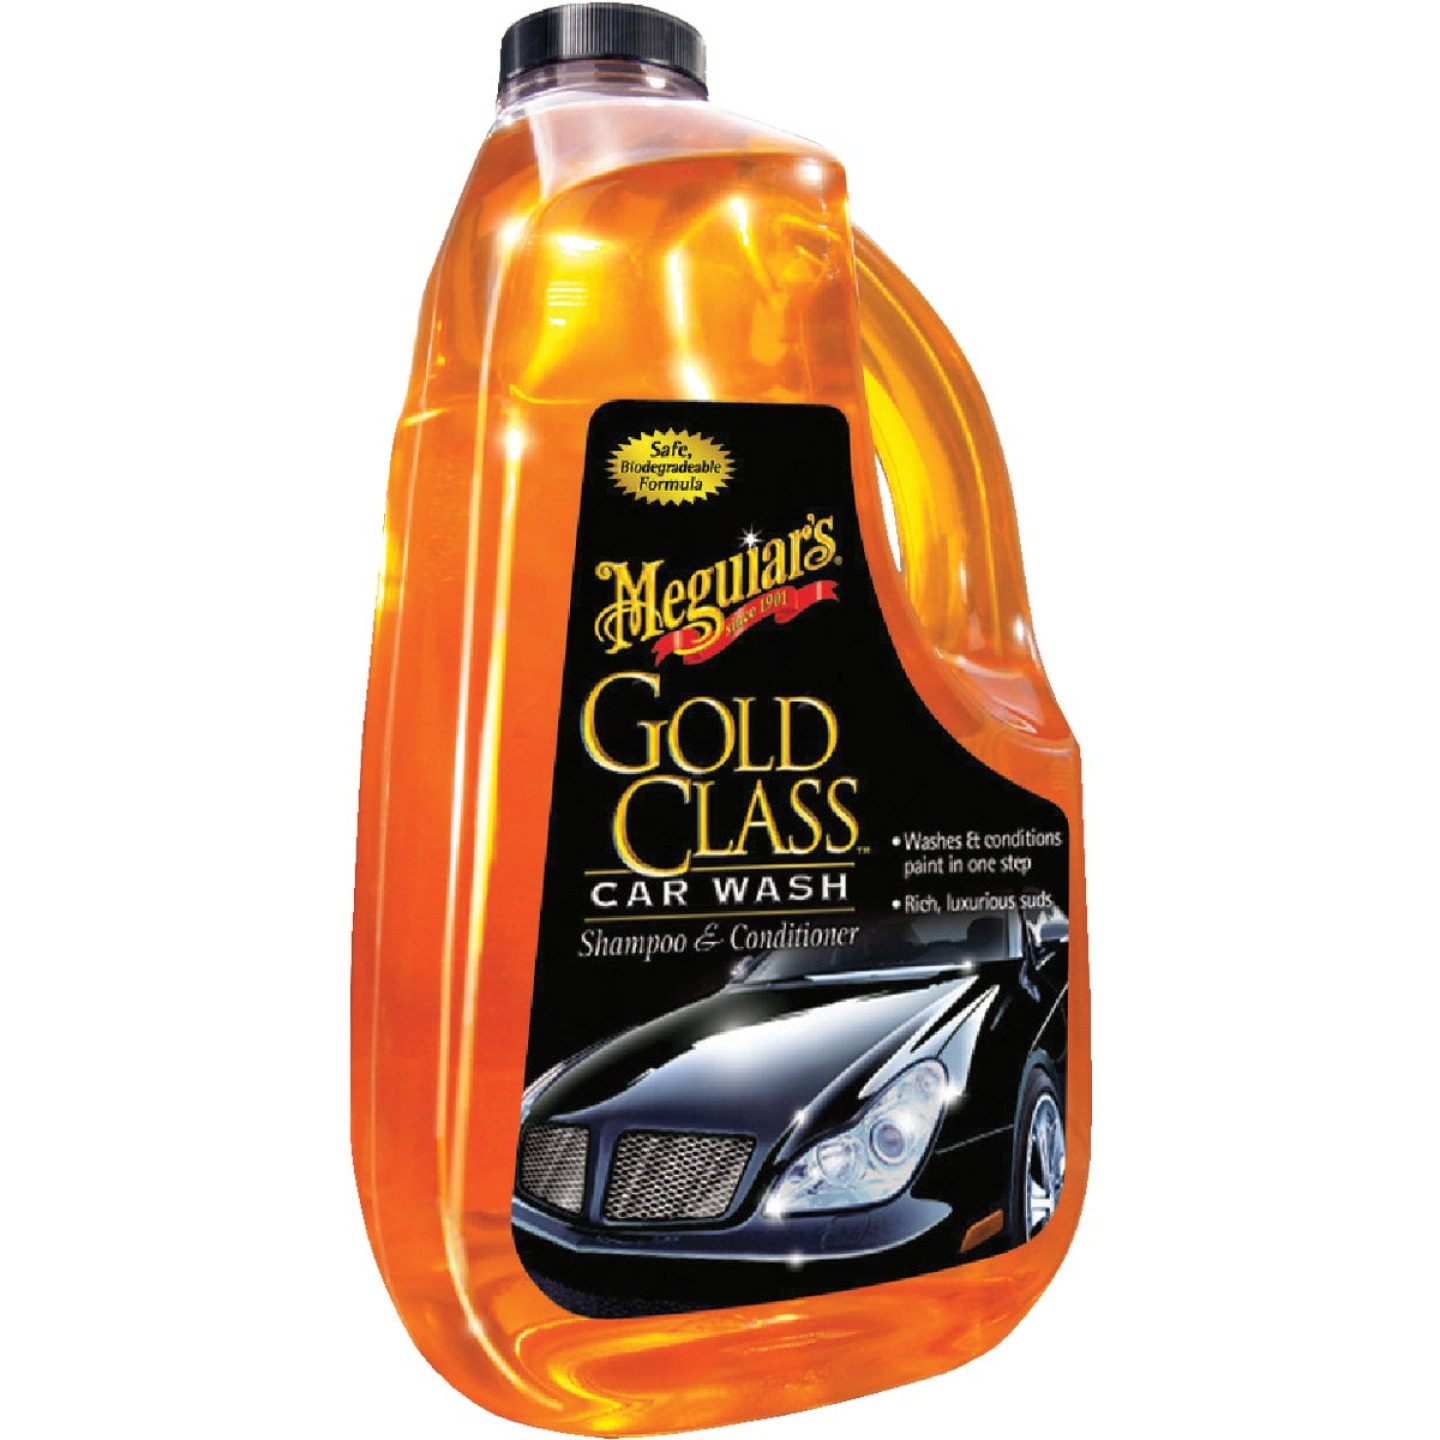 Meguiars 64 Oz. Liquid Gold Class Car Wash Image 1